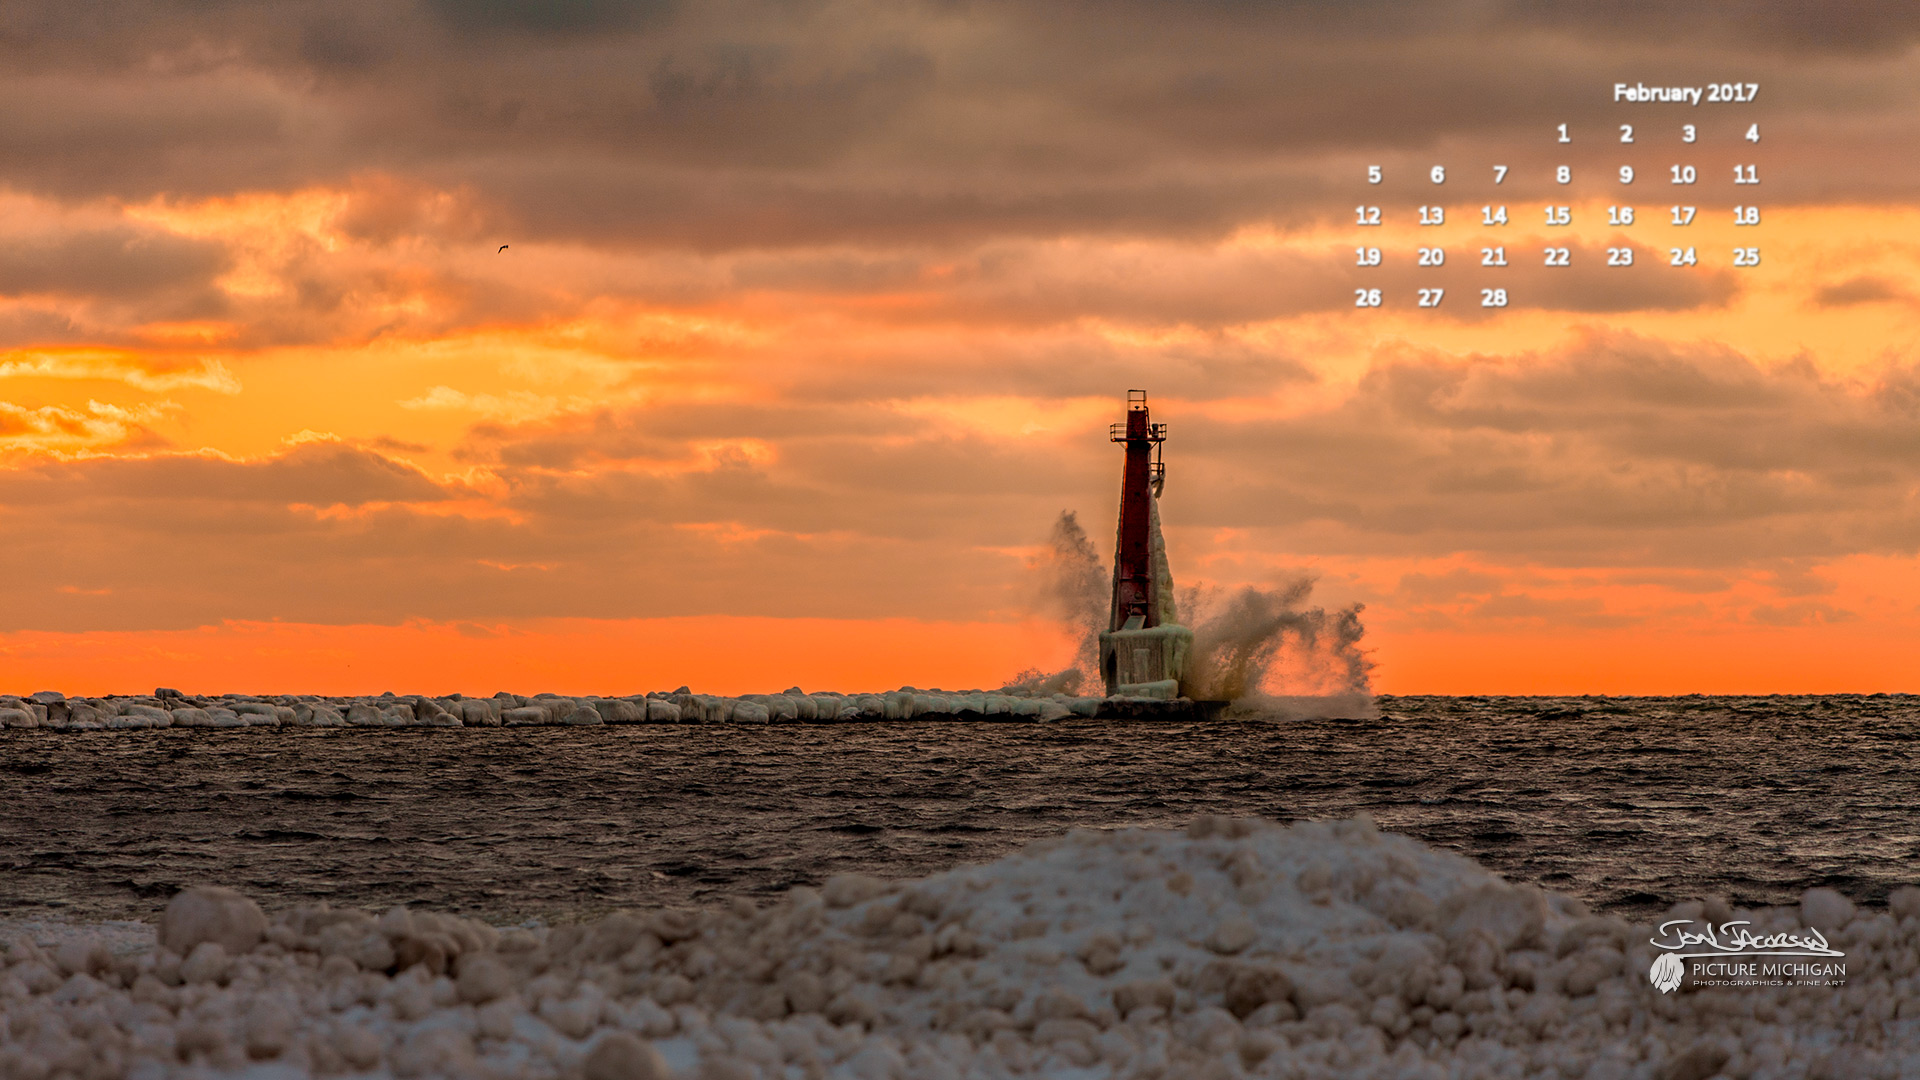 February 2017 Calendar Desktop Wallpaper Windy Sunset At Muskegon